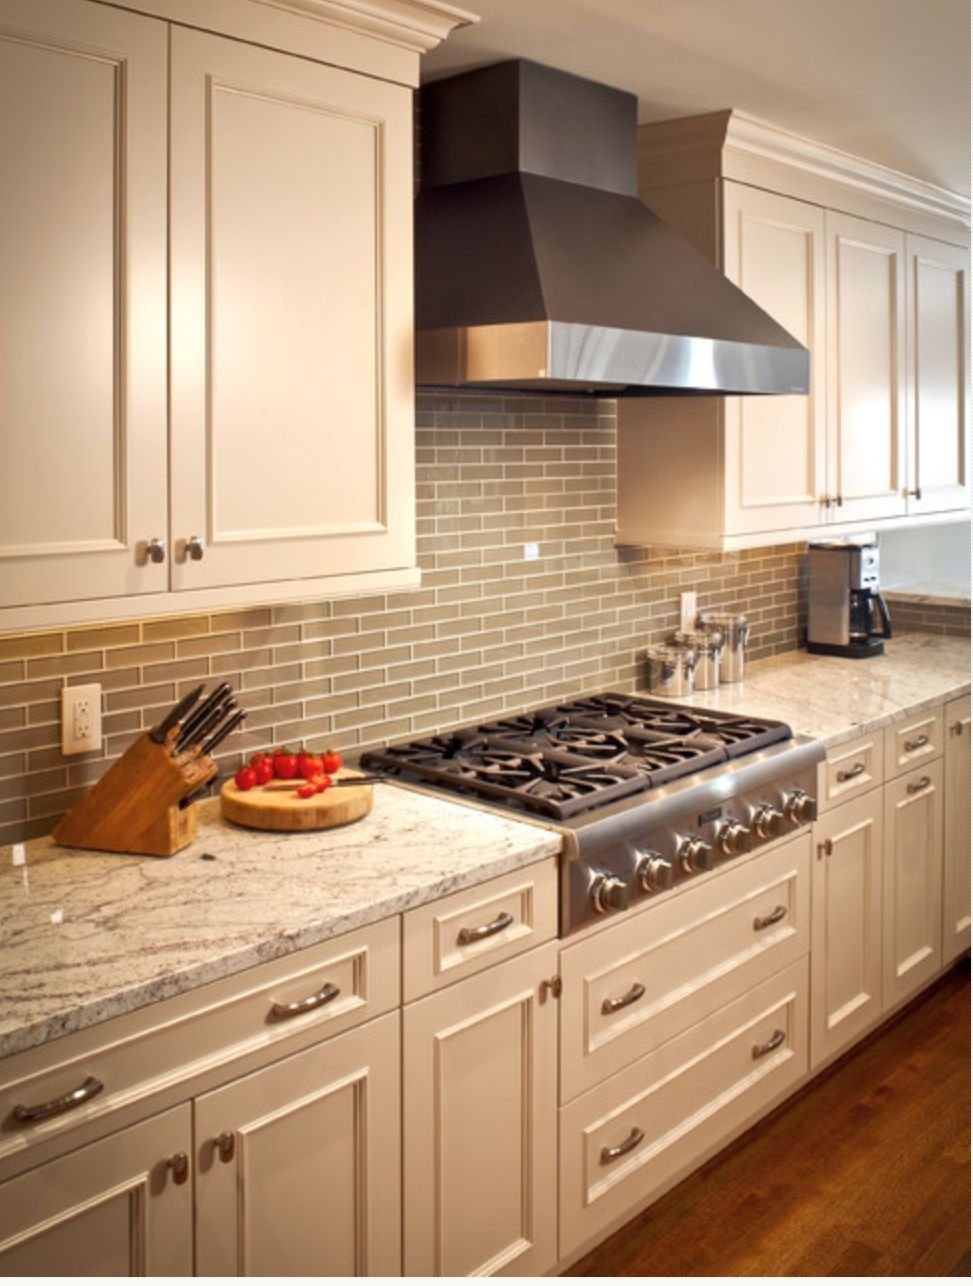 White Kitchens With Granite Countertops River White Granite For Countertops Finally Something That Looks